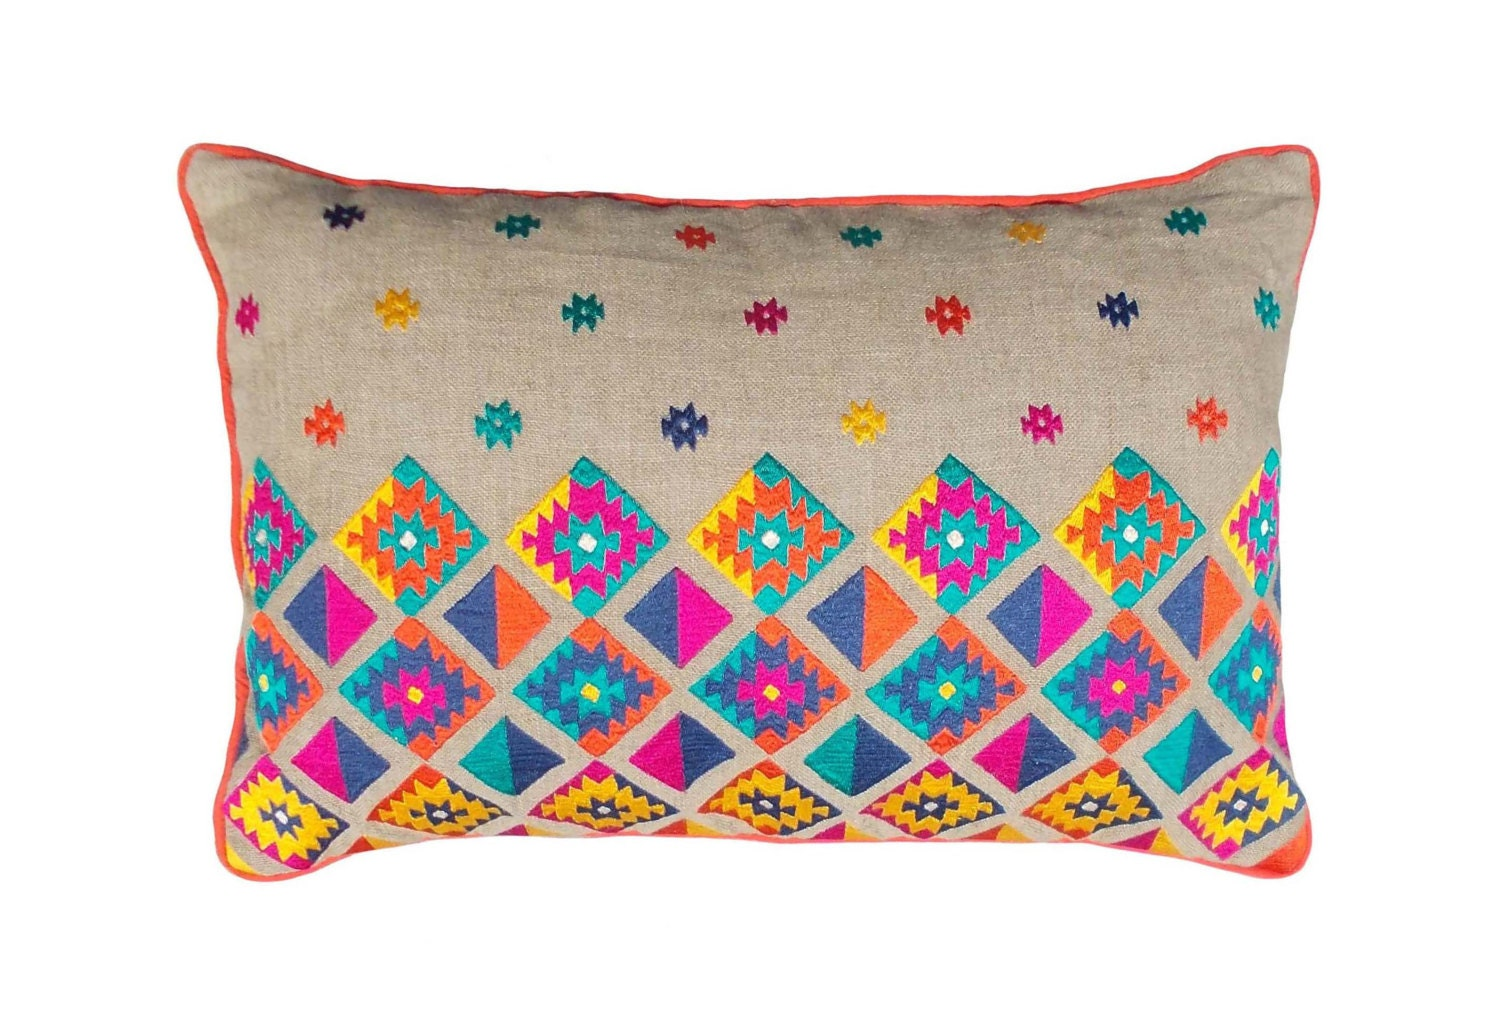 Colorful bohemian style linen pillow cover embroidered